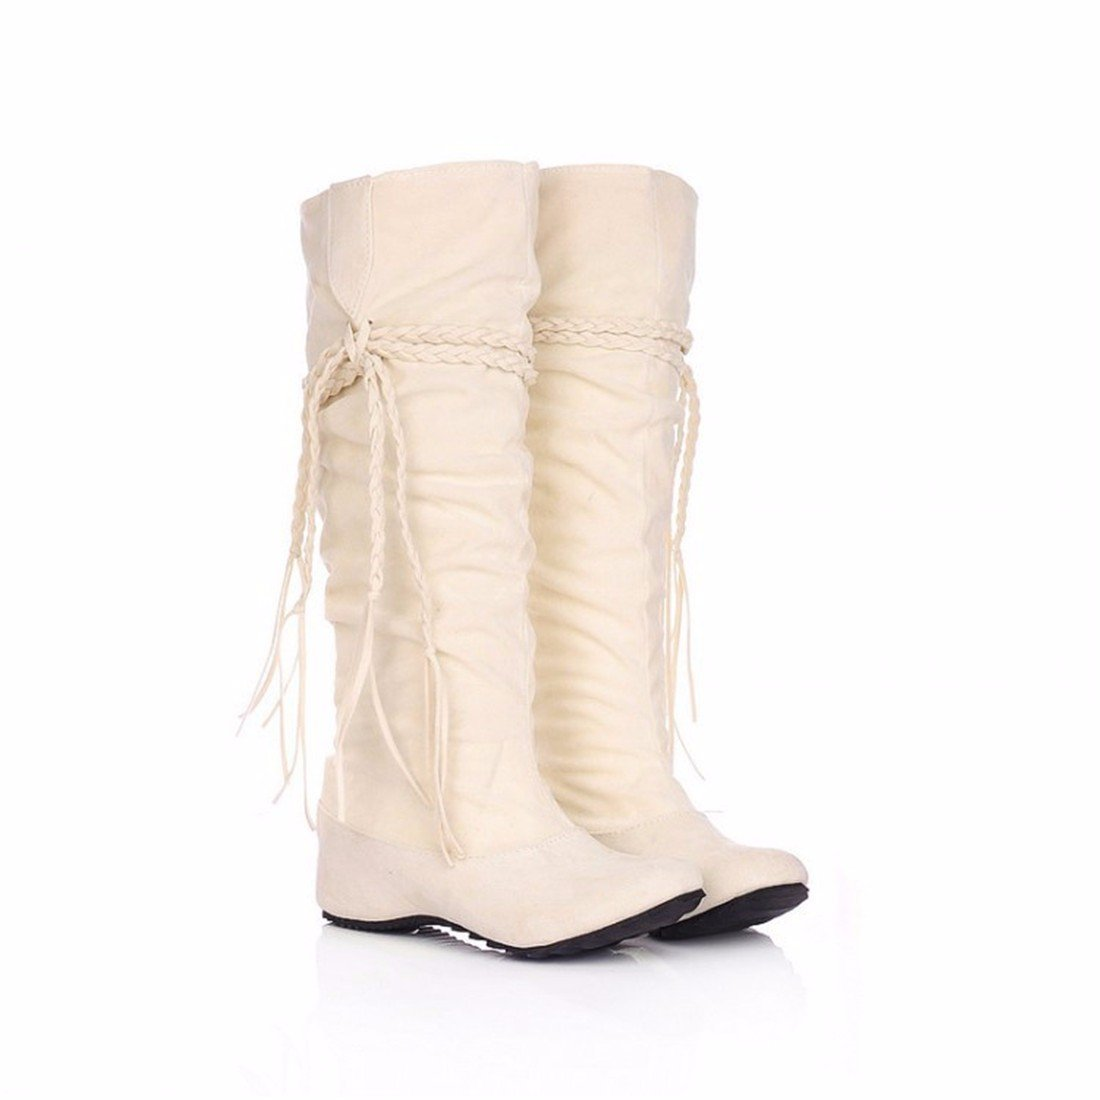 The increase in size of winter scrub fringed boots high boots students US5 / EU35 / UK3 / CN34|Beige (suede)